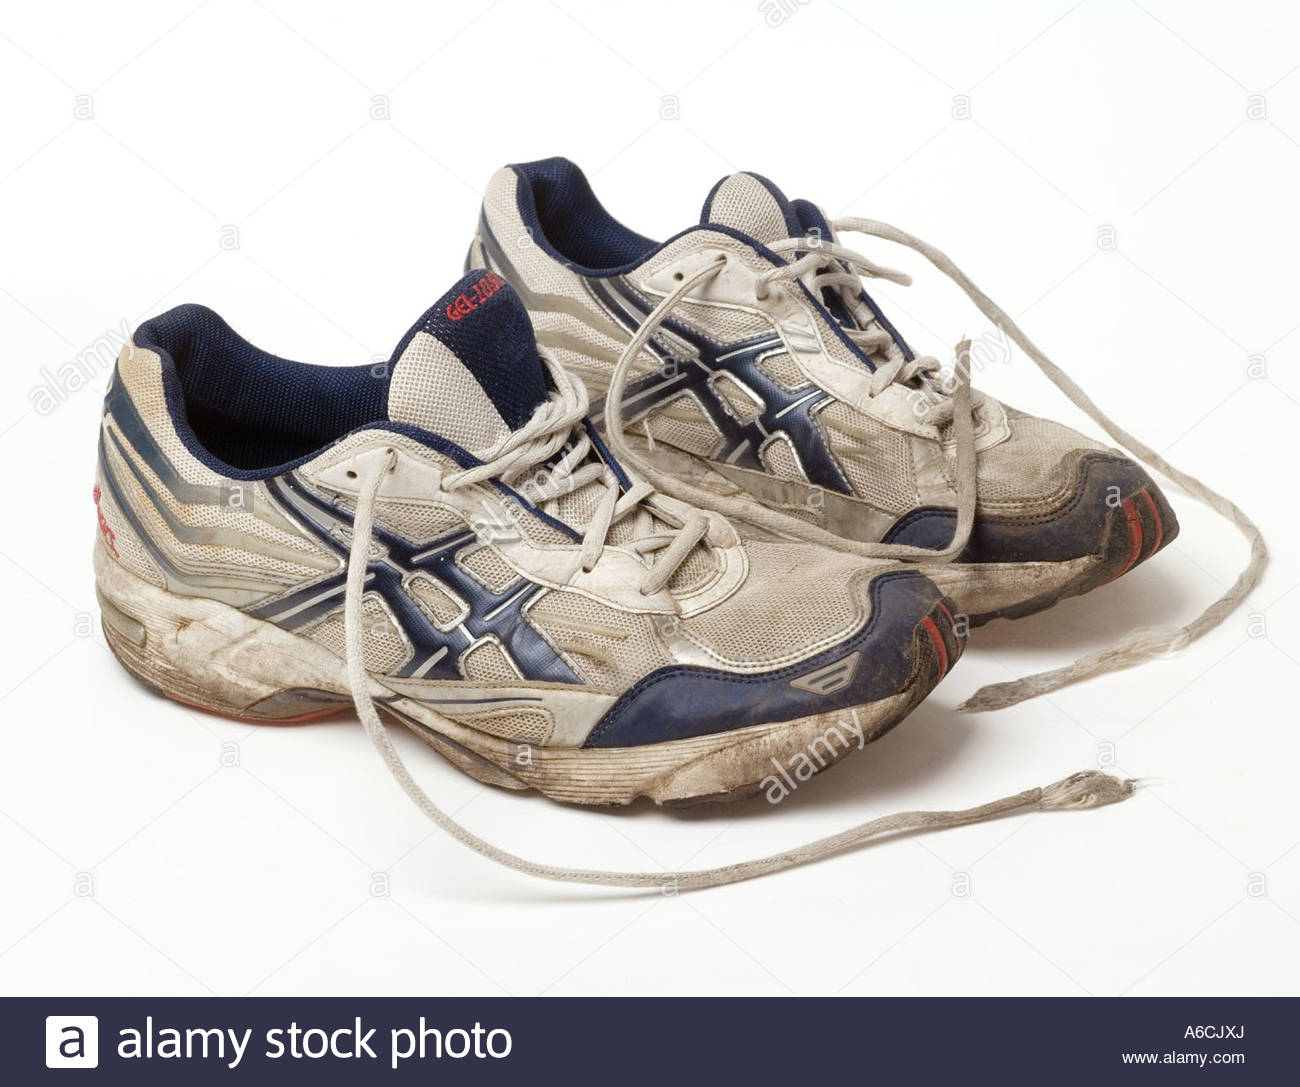 Running Shoes For Bad Smelly Feet